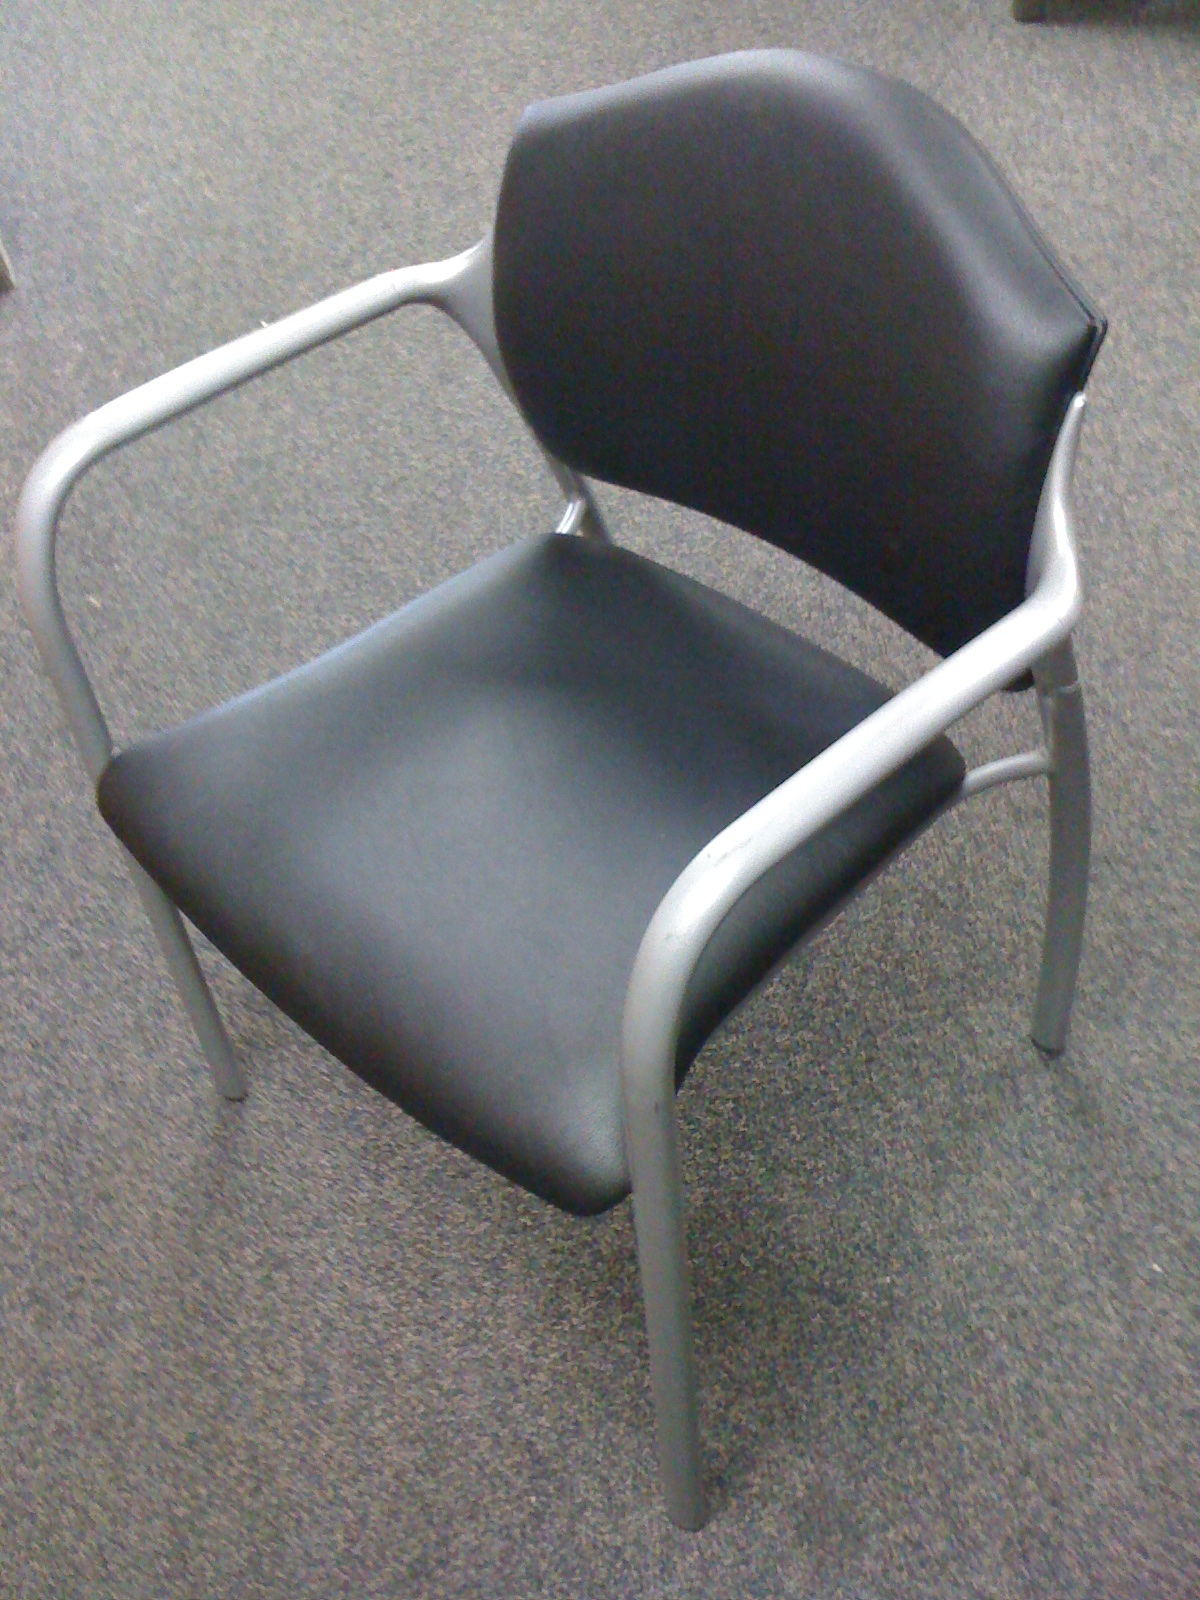 Aeron Ergon Equa Seating Re Dress Inc